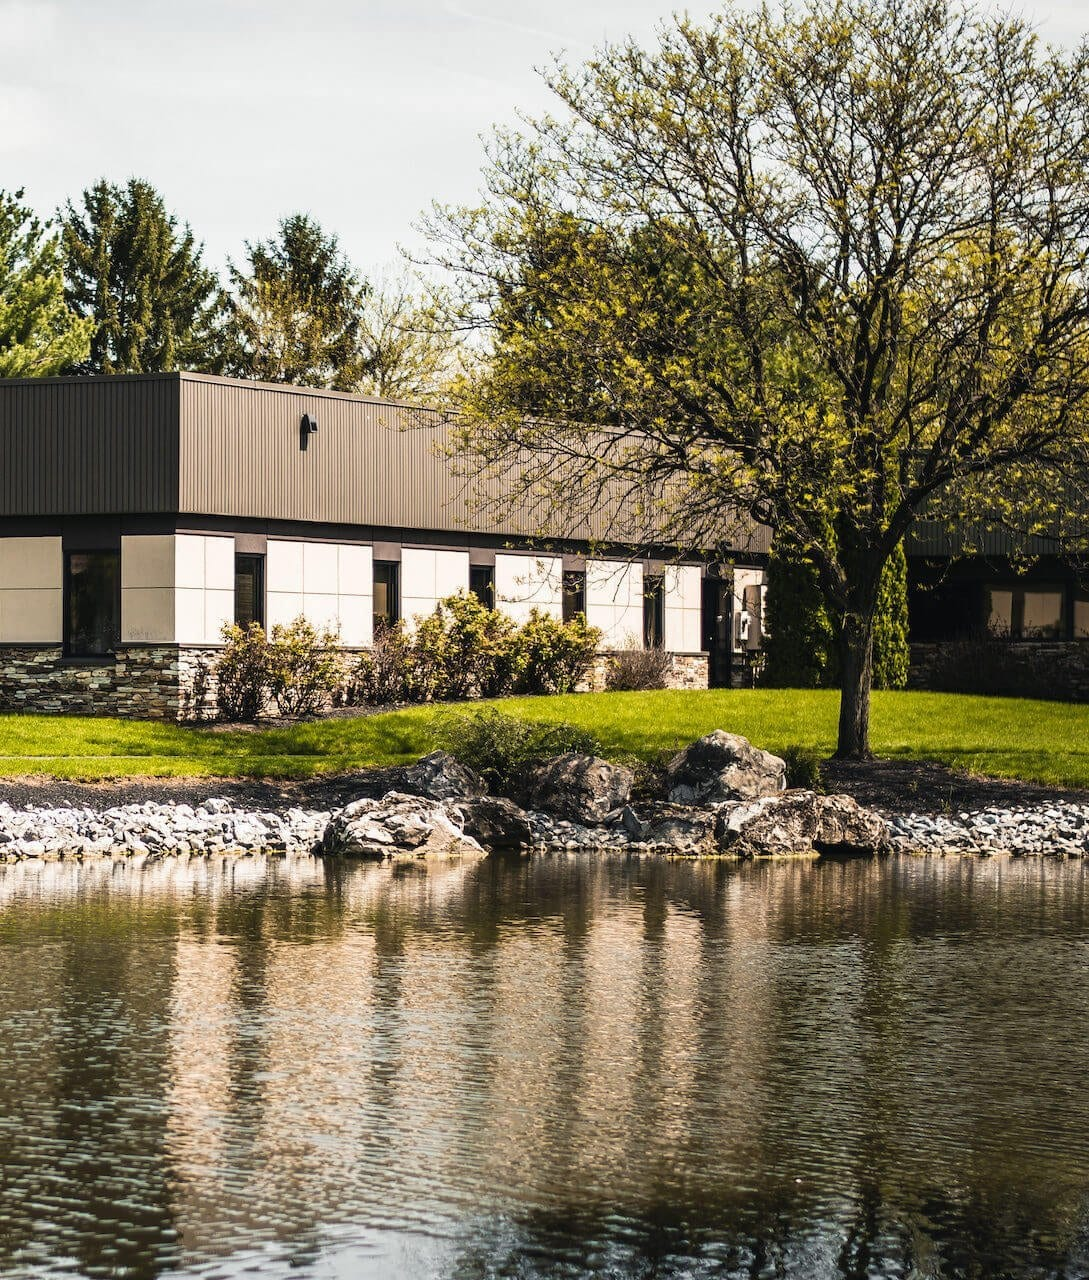 PA Drug Rehab Centers - Front View of Office Building. PA Addiction Treatment